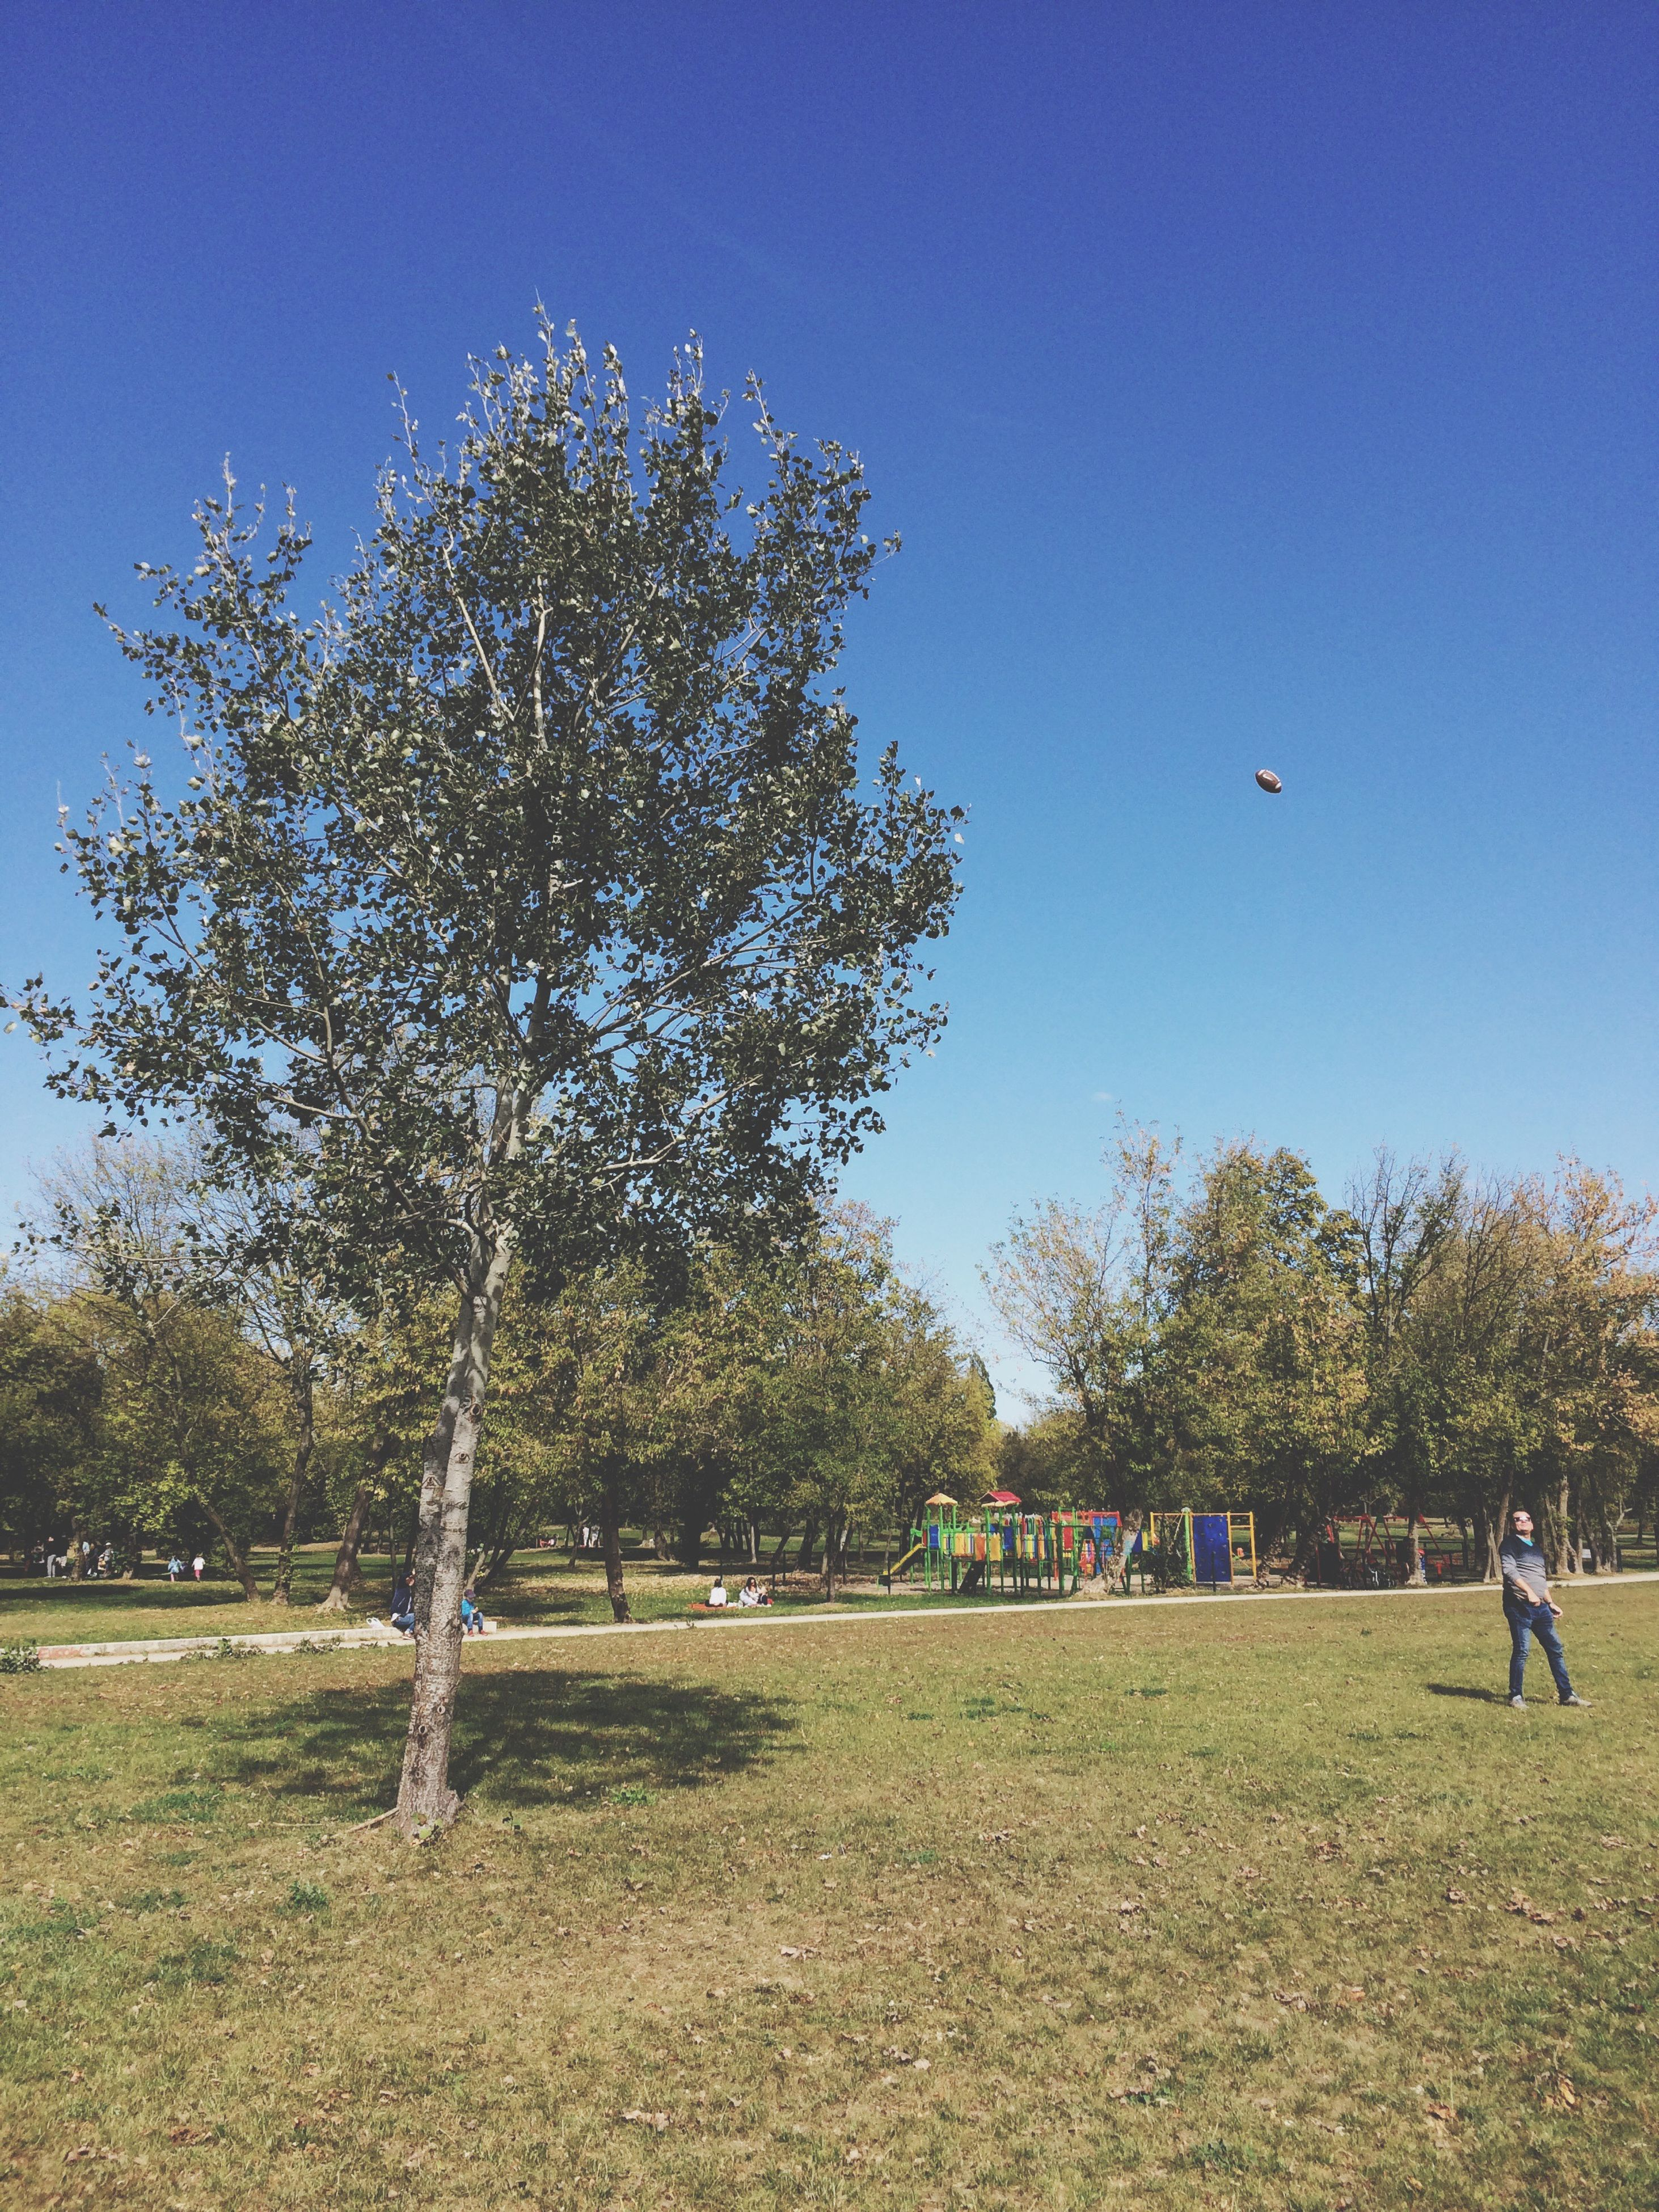 tree, grass, park - man made space, clear sky, leisure activity, lifestyles, growth, men, blue, sunlight, tranquil scene, green color, tranquility, day, park, nature, beauty in nature, relaxation, field, person, scenics, tourism, outdoors, vacations, carefree